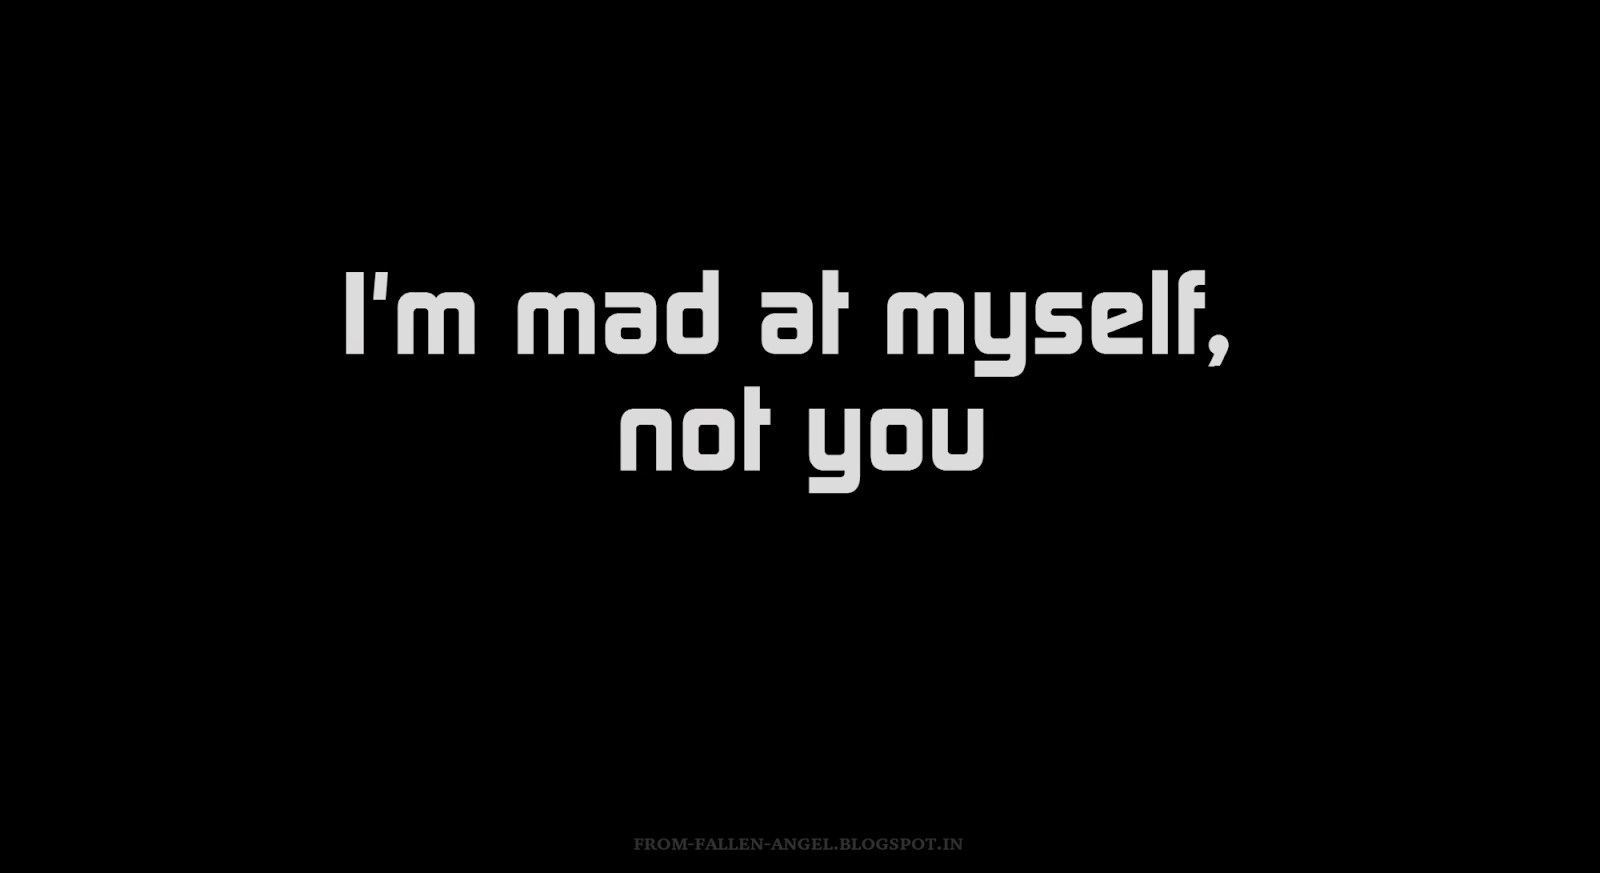 I'm mad at myself, not you